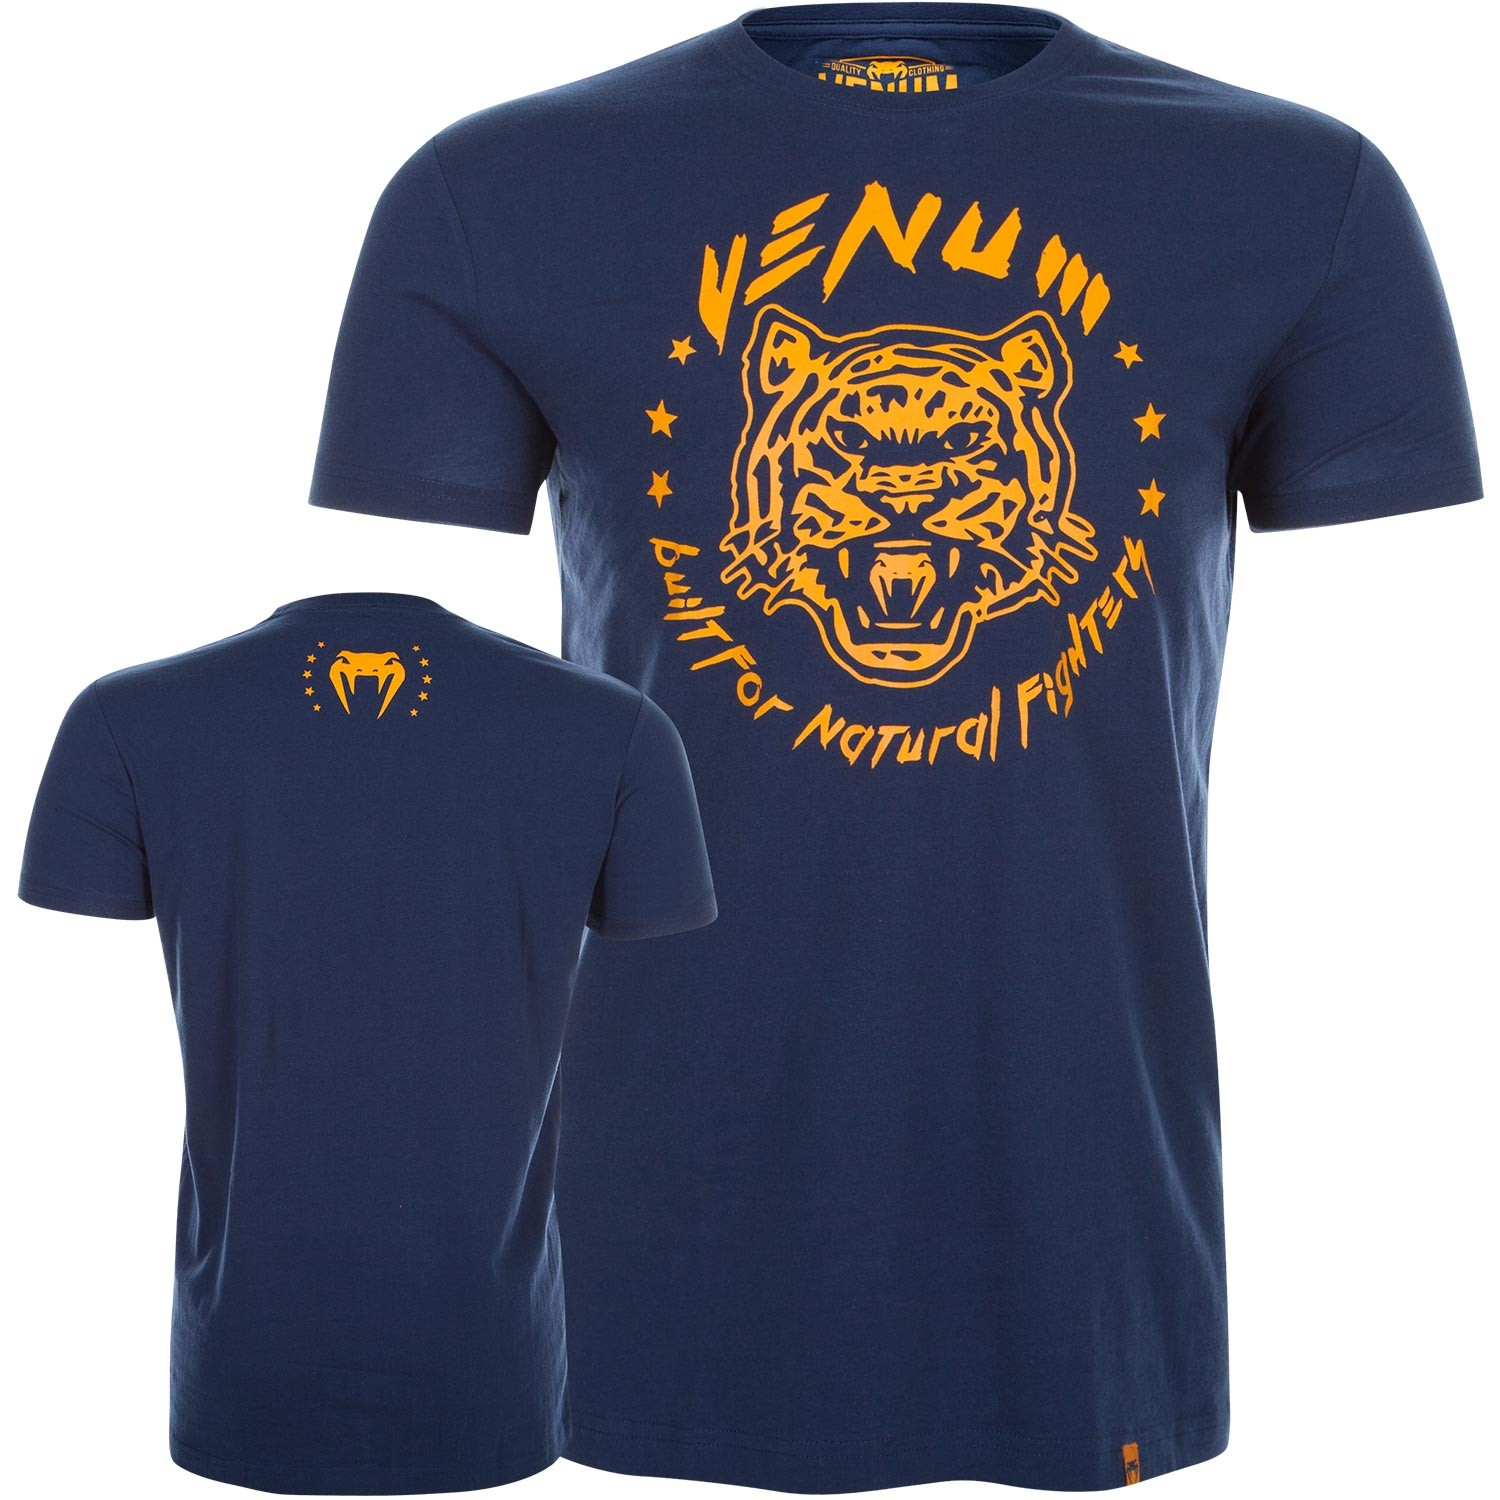 Футболка Venum Natural Fighter Tiger - Blue<br>Вес кг: 200.00000000;